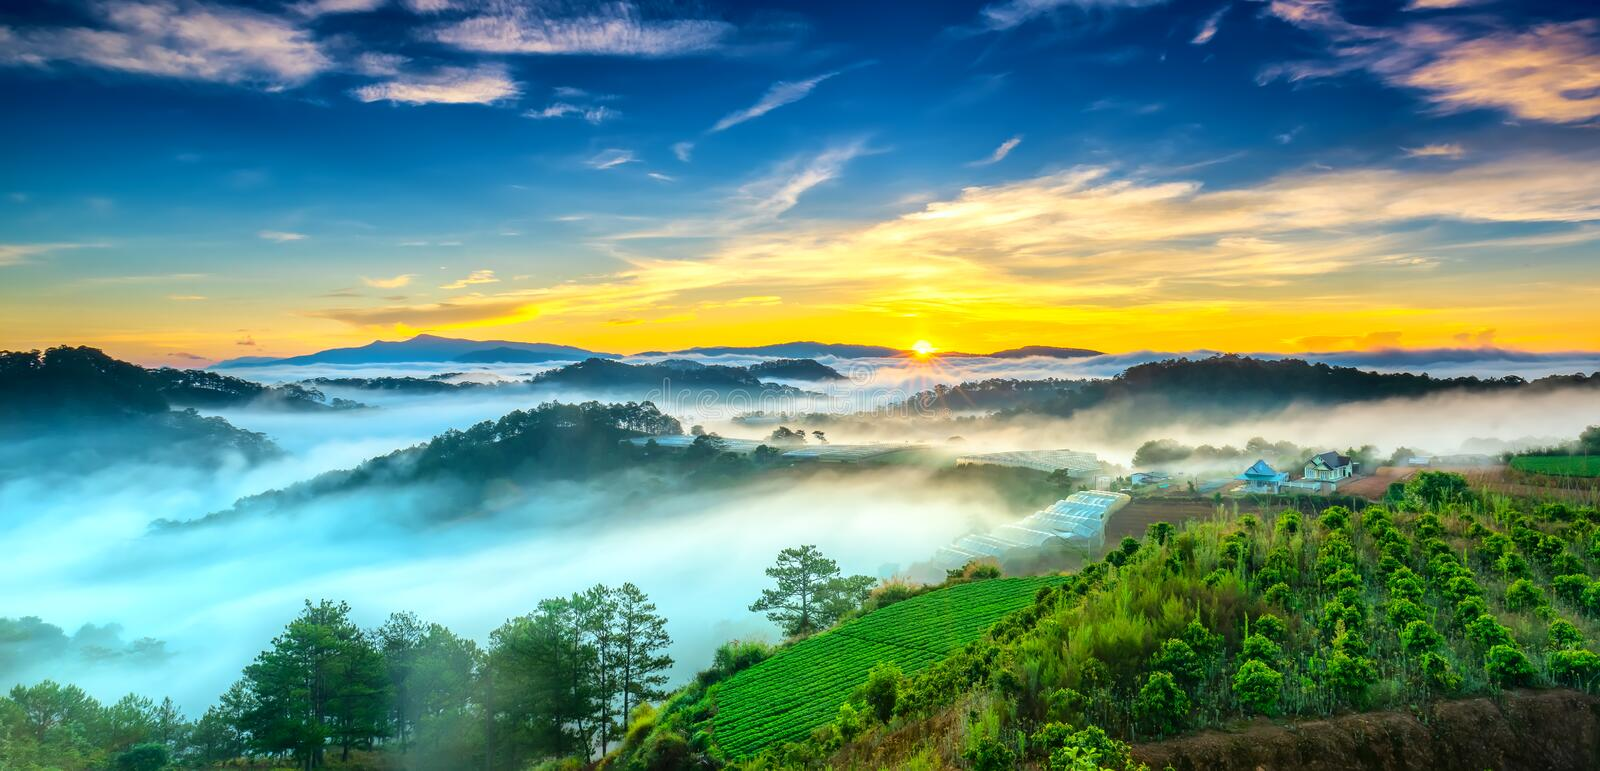 Sunrise over hillside as the sun rising from horizon reflect light bright yellow sky. Below cloudy mist covered valleys flooded pine forests create impressive royalty free stock image